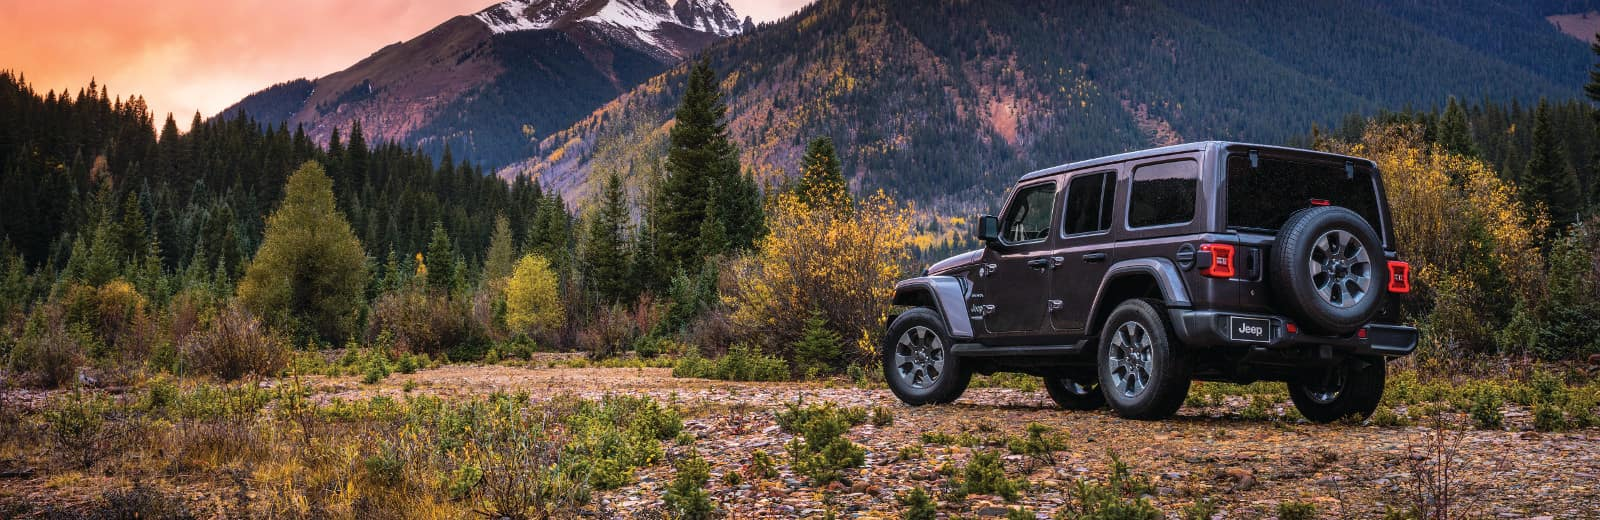 Royal Gate Dodge >> 2019 Jeep Wrangler Trim Levels: Sport vs. Sport S vs. Sahara